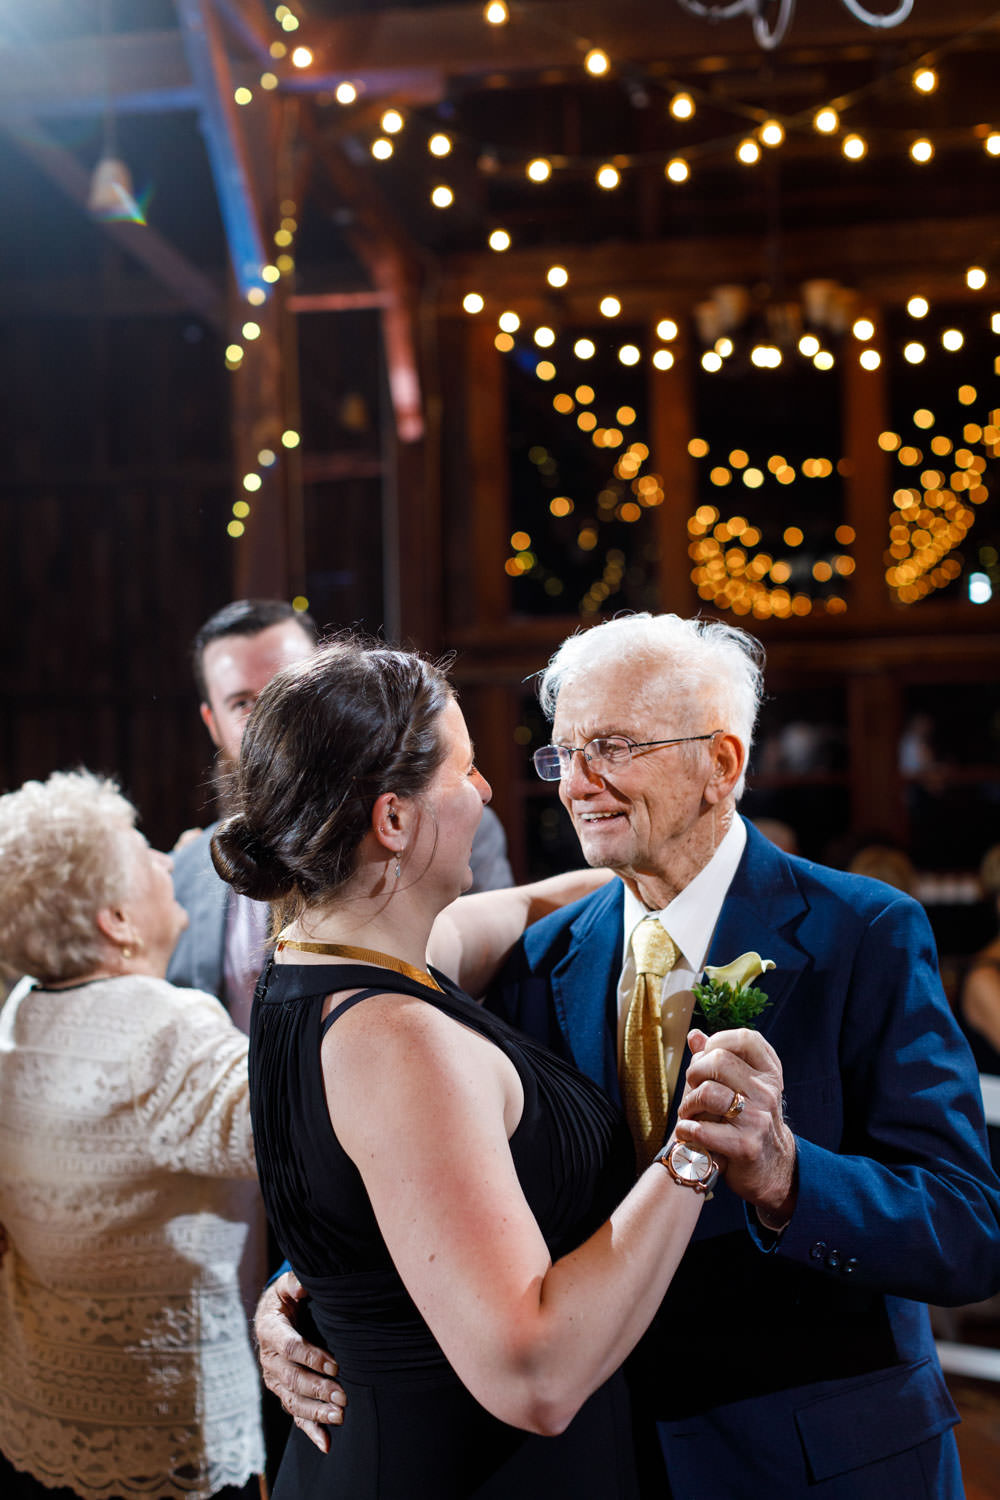 Grandpa of the bride dancing with guest at receptions